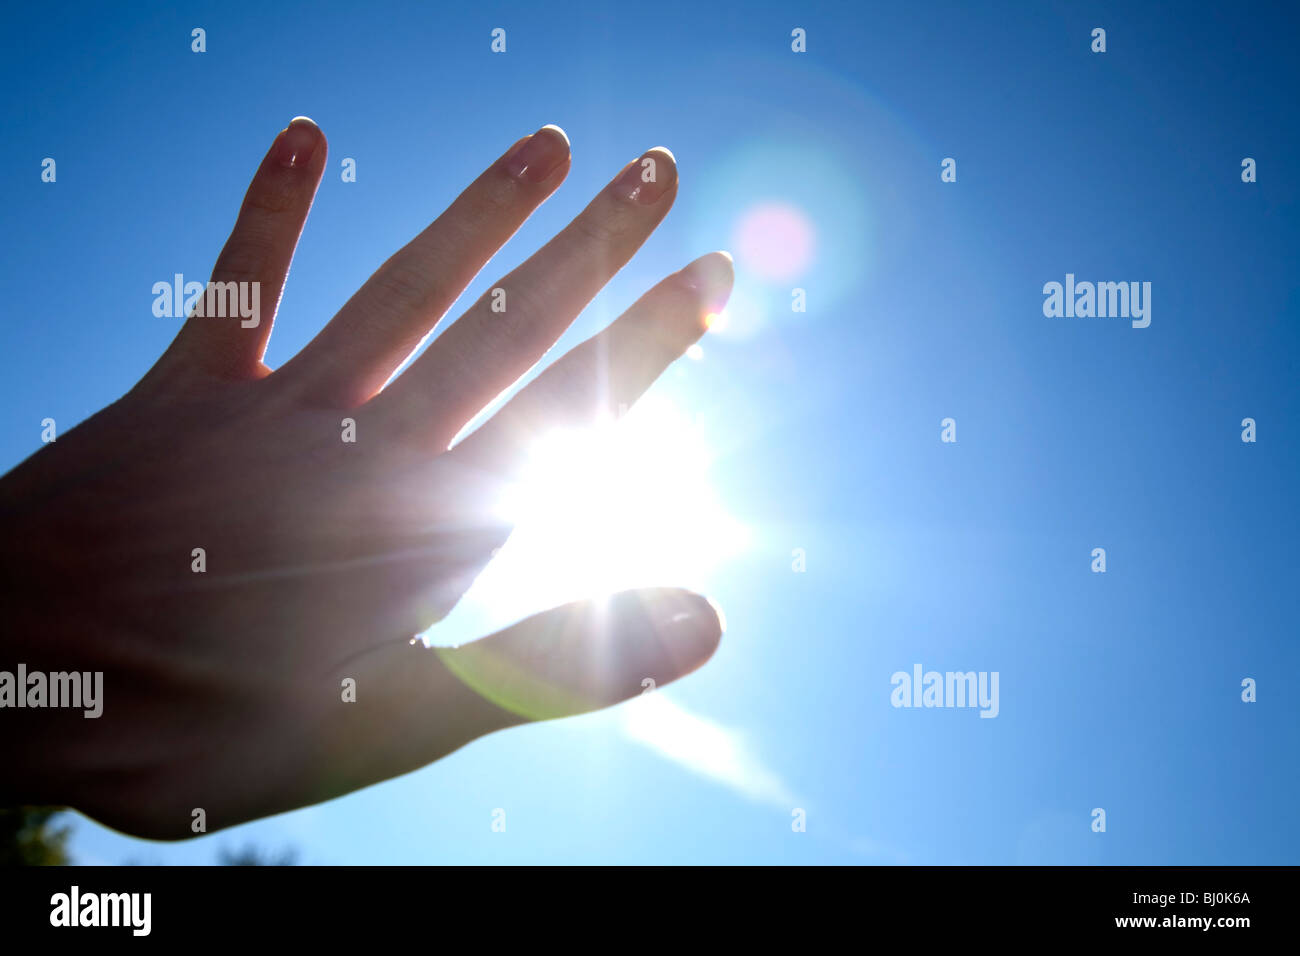 close-up of hand in front of blue sky with burning sun - Stock Image